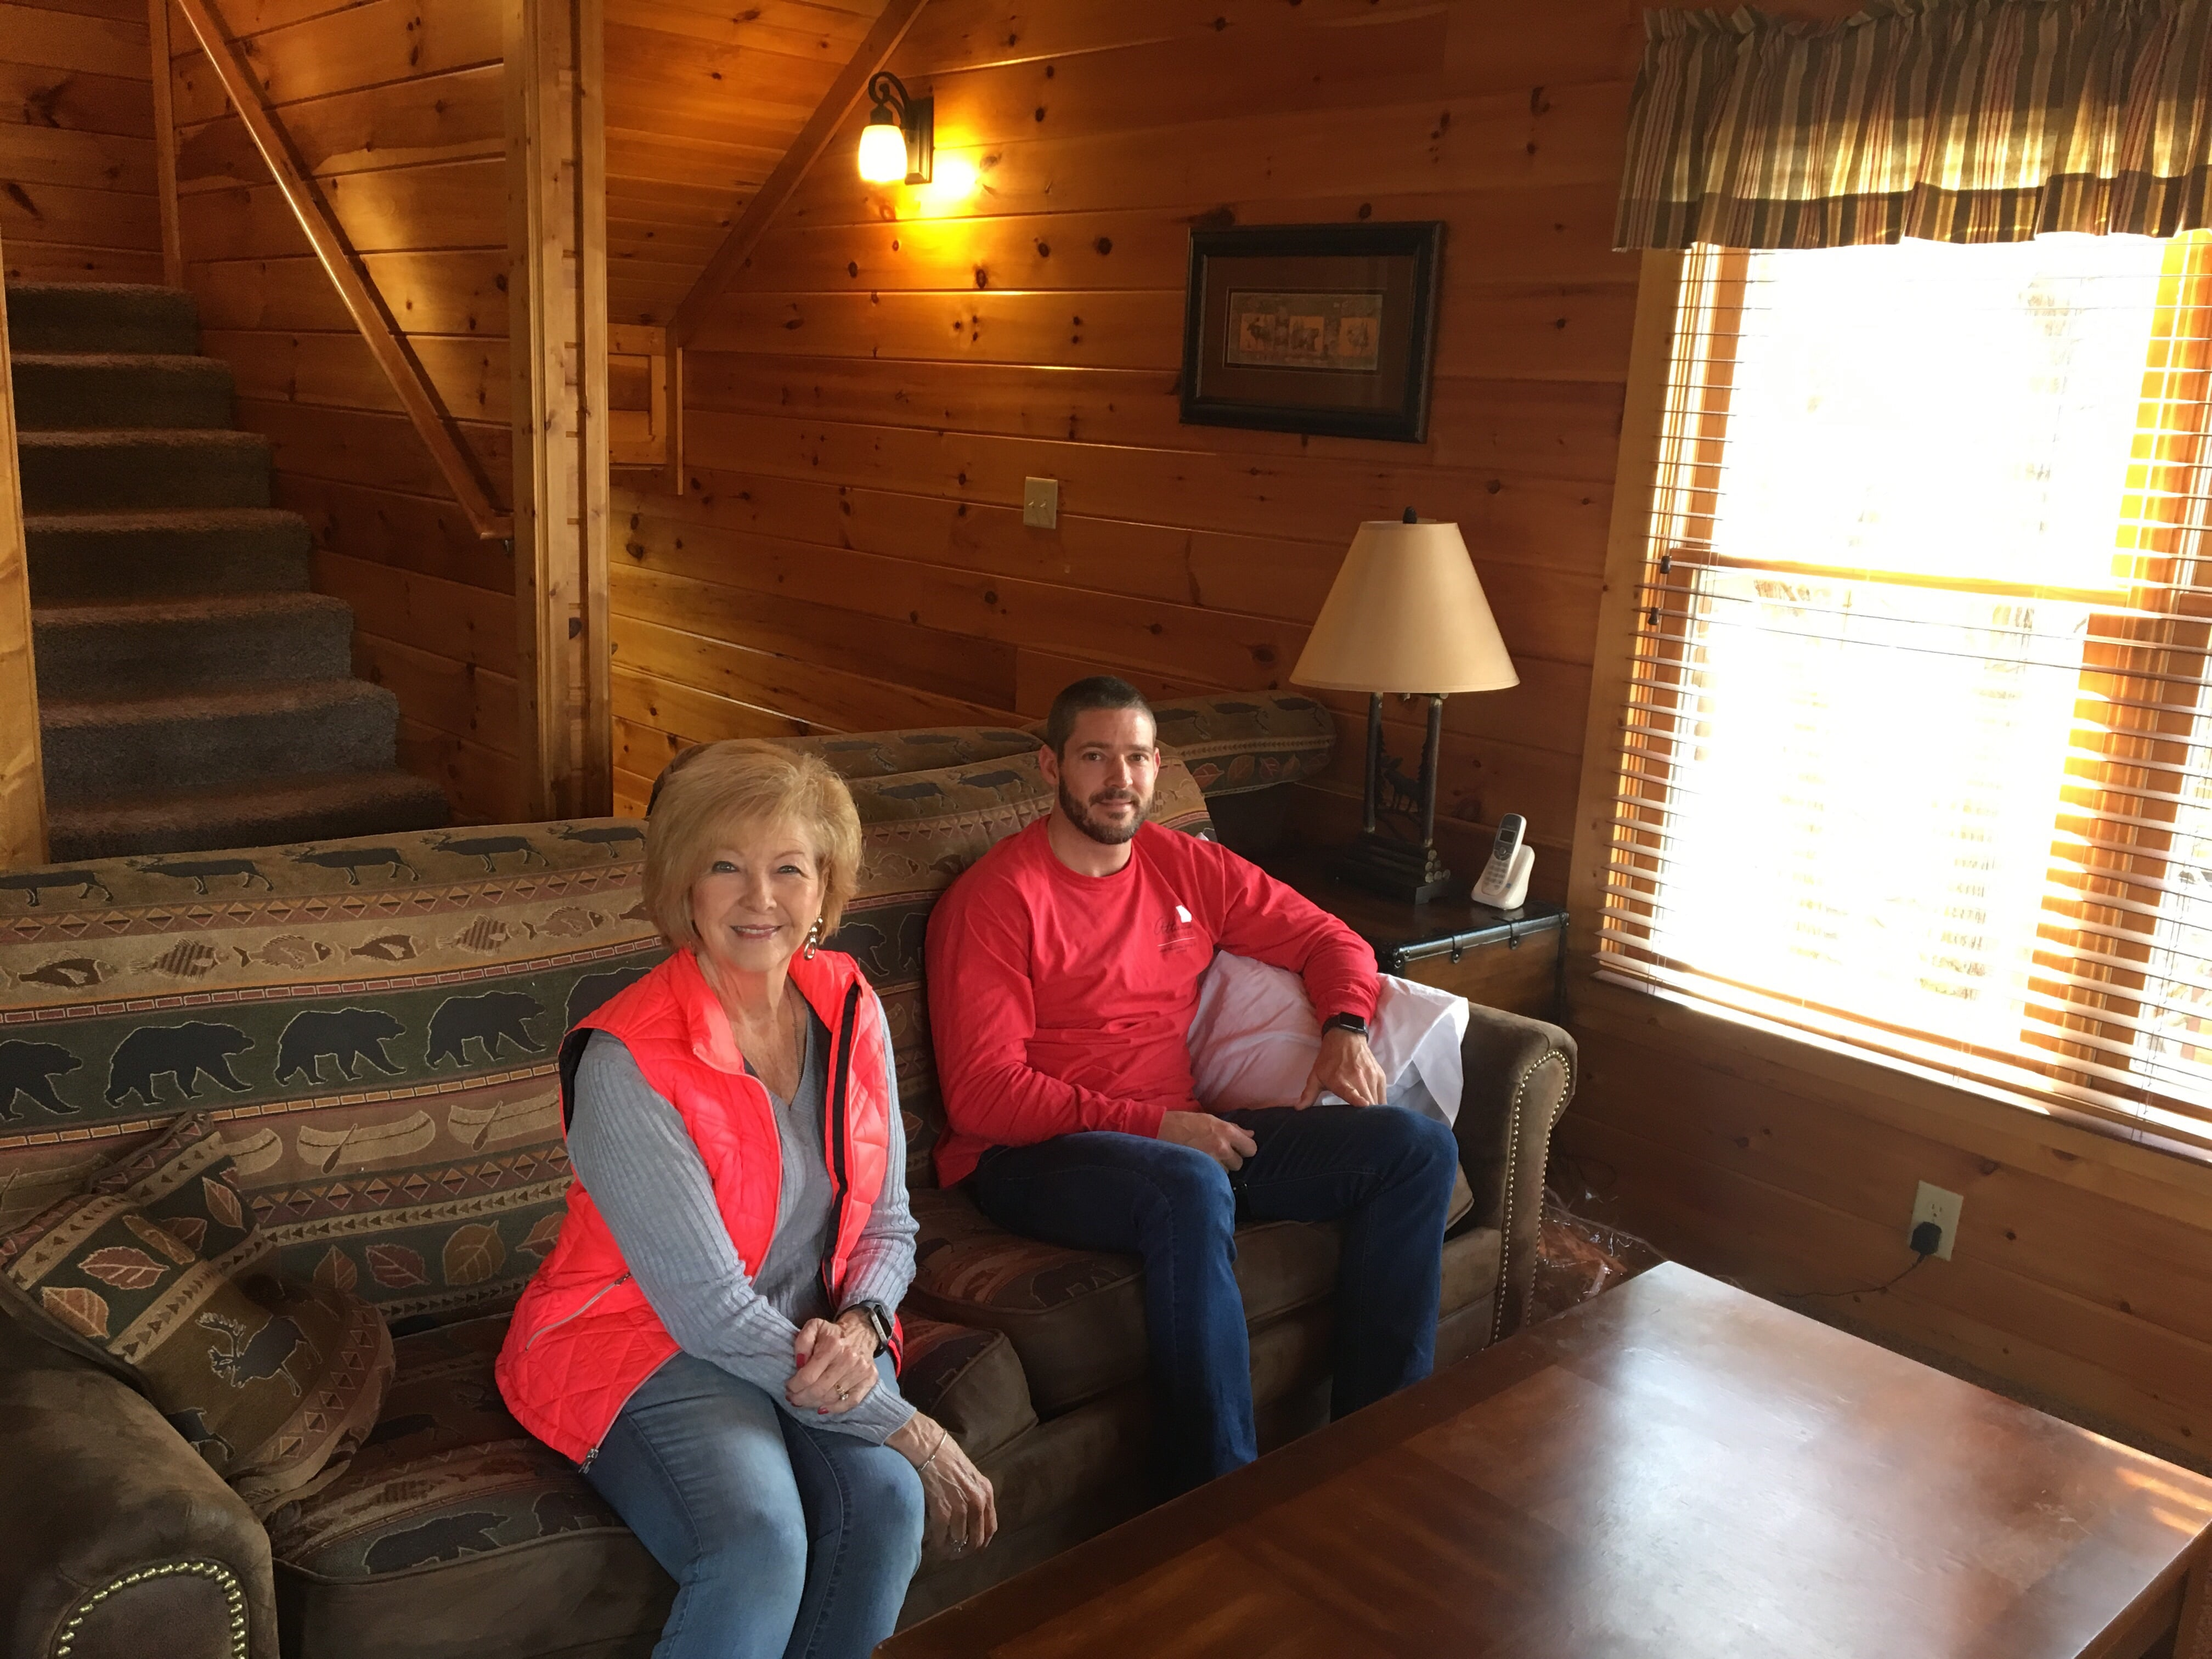 Grandmother and son on couch in a cabin